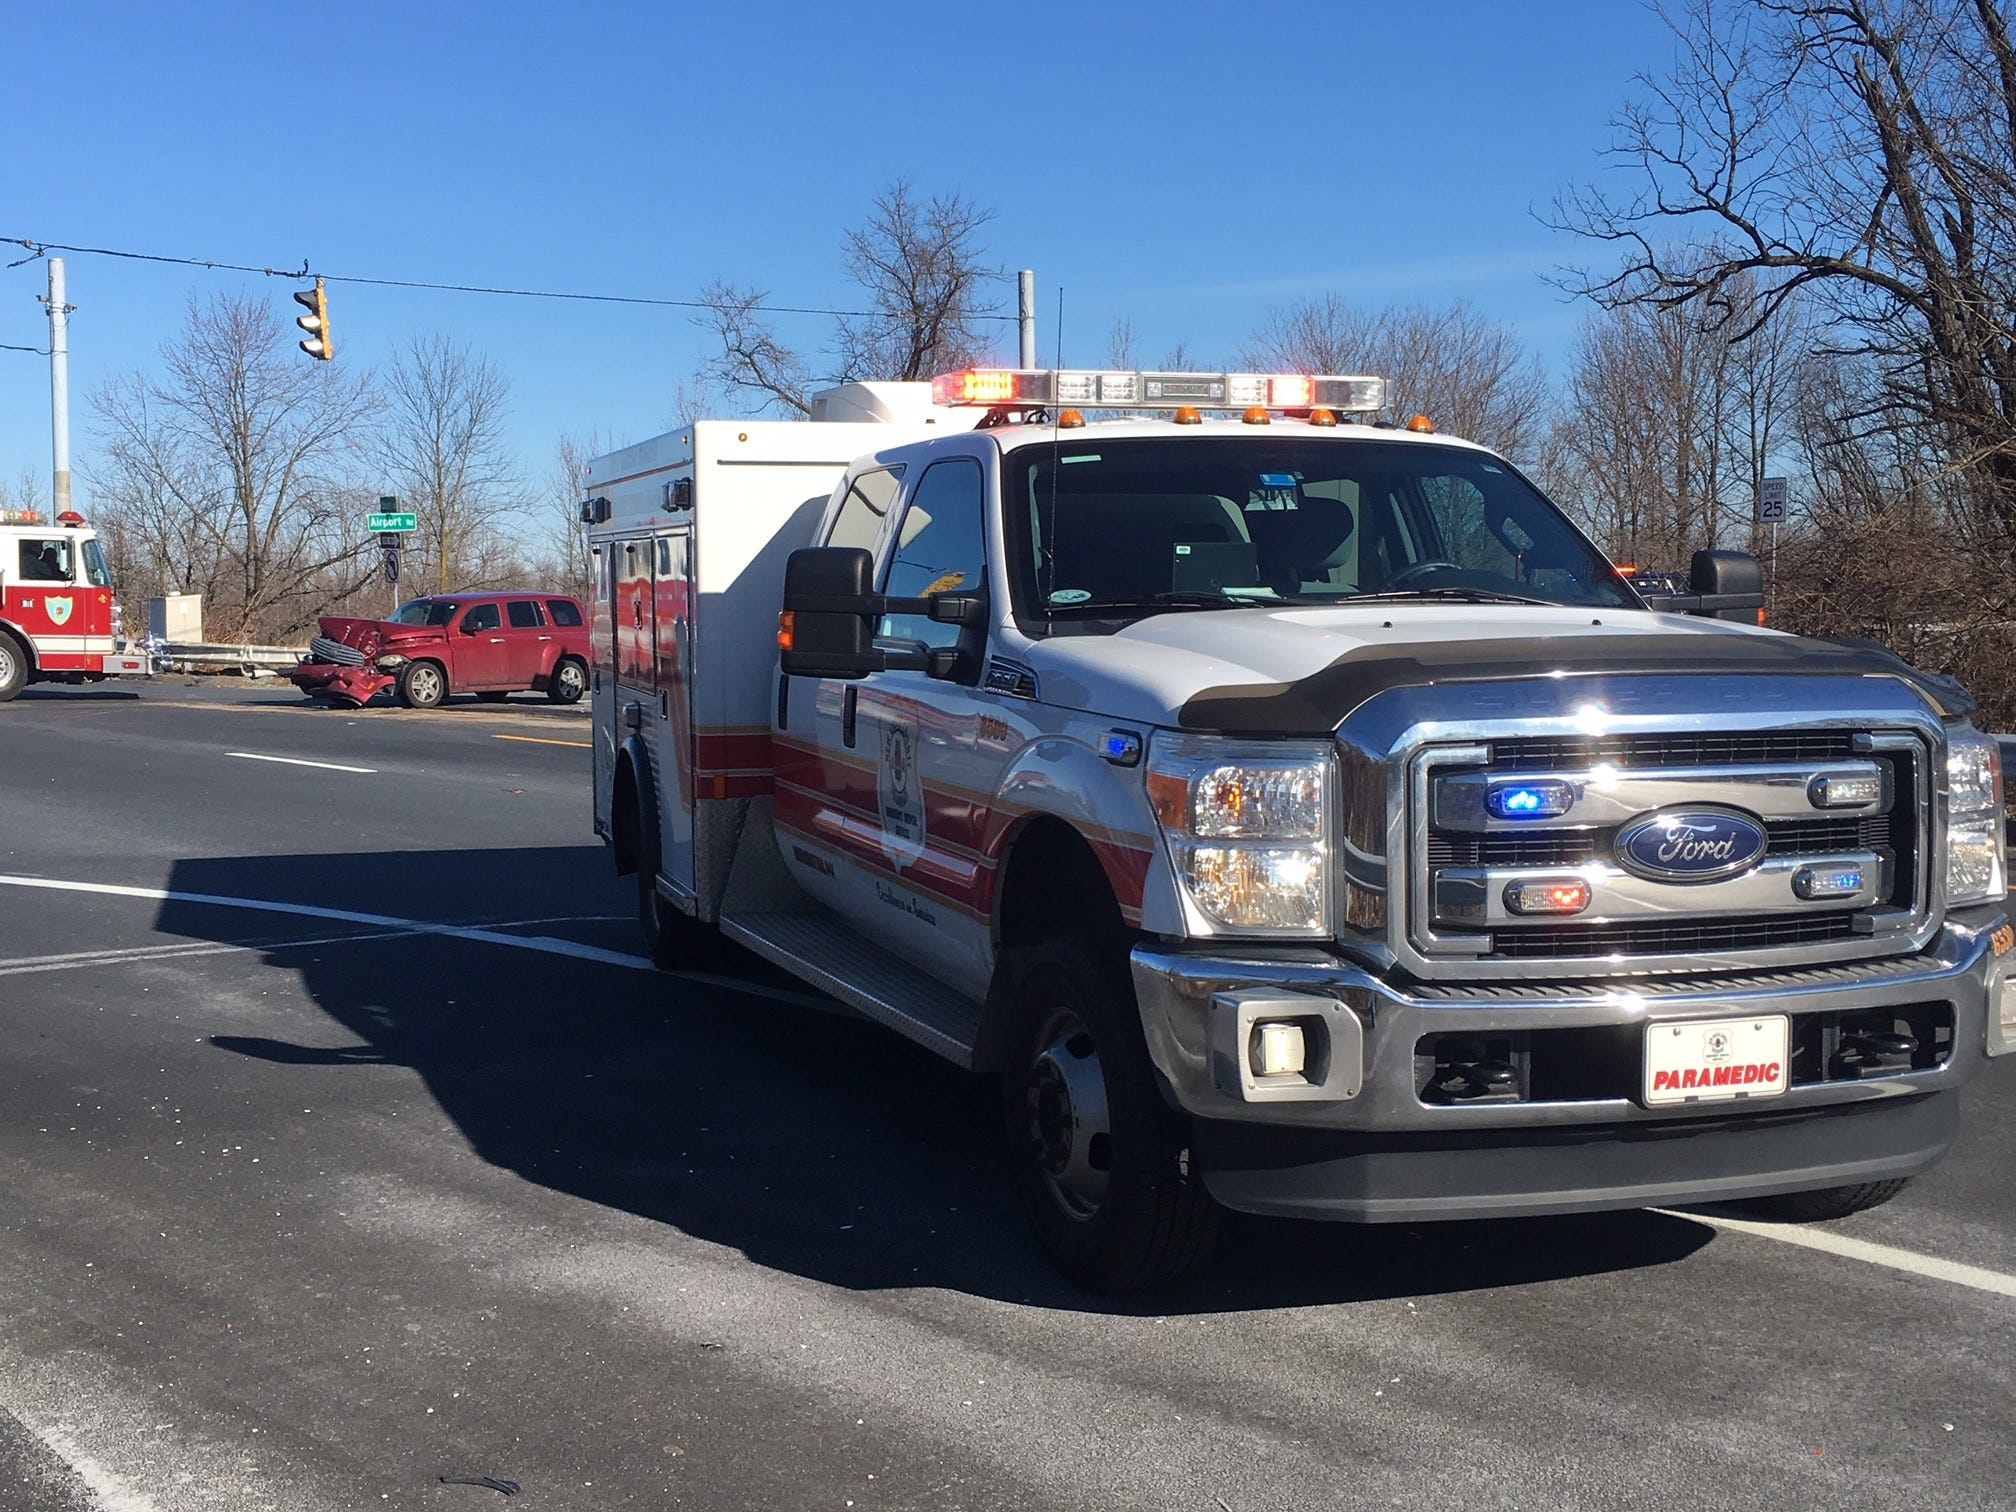 Paramedics' truck and Chevy collide near New Castle